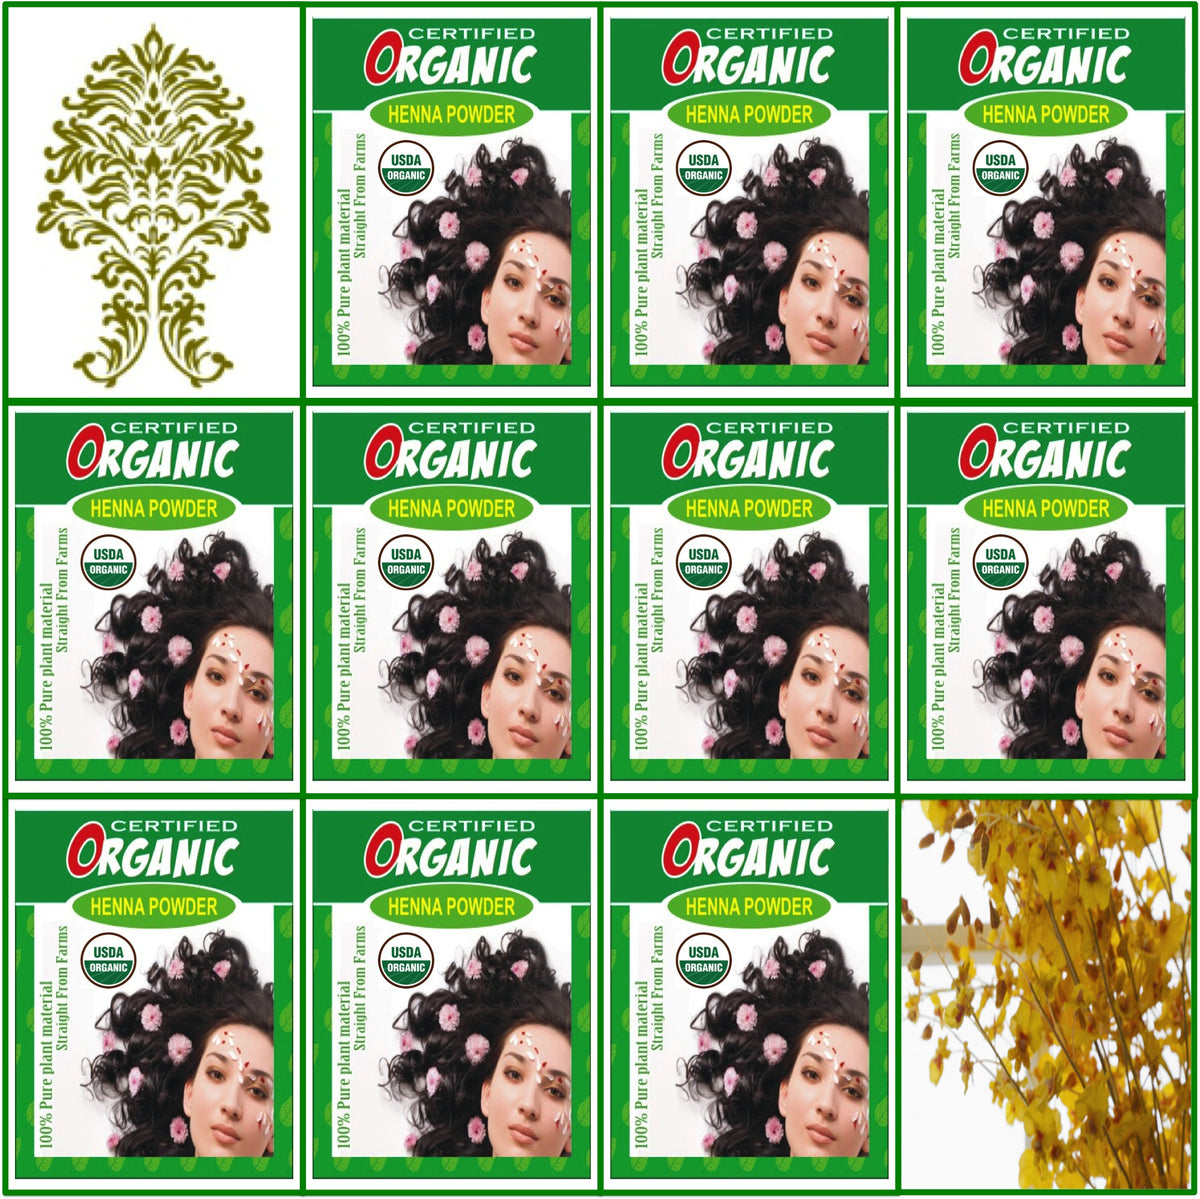 10 Boxes USDA Certified Organic Henna Hair Color 100g Each